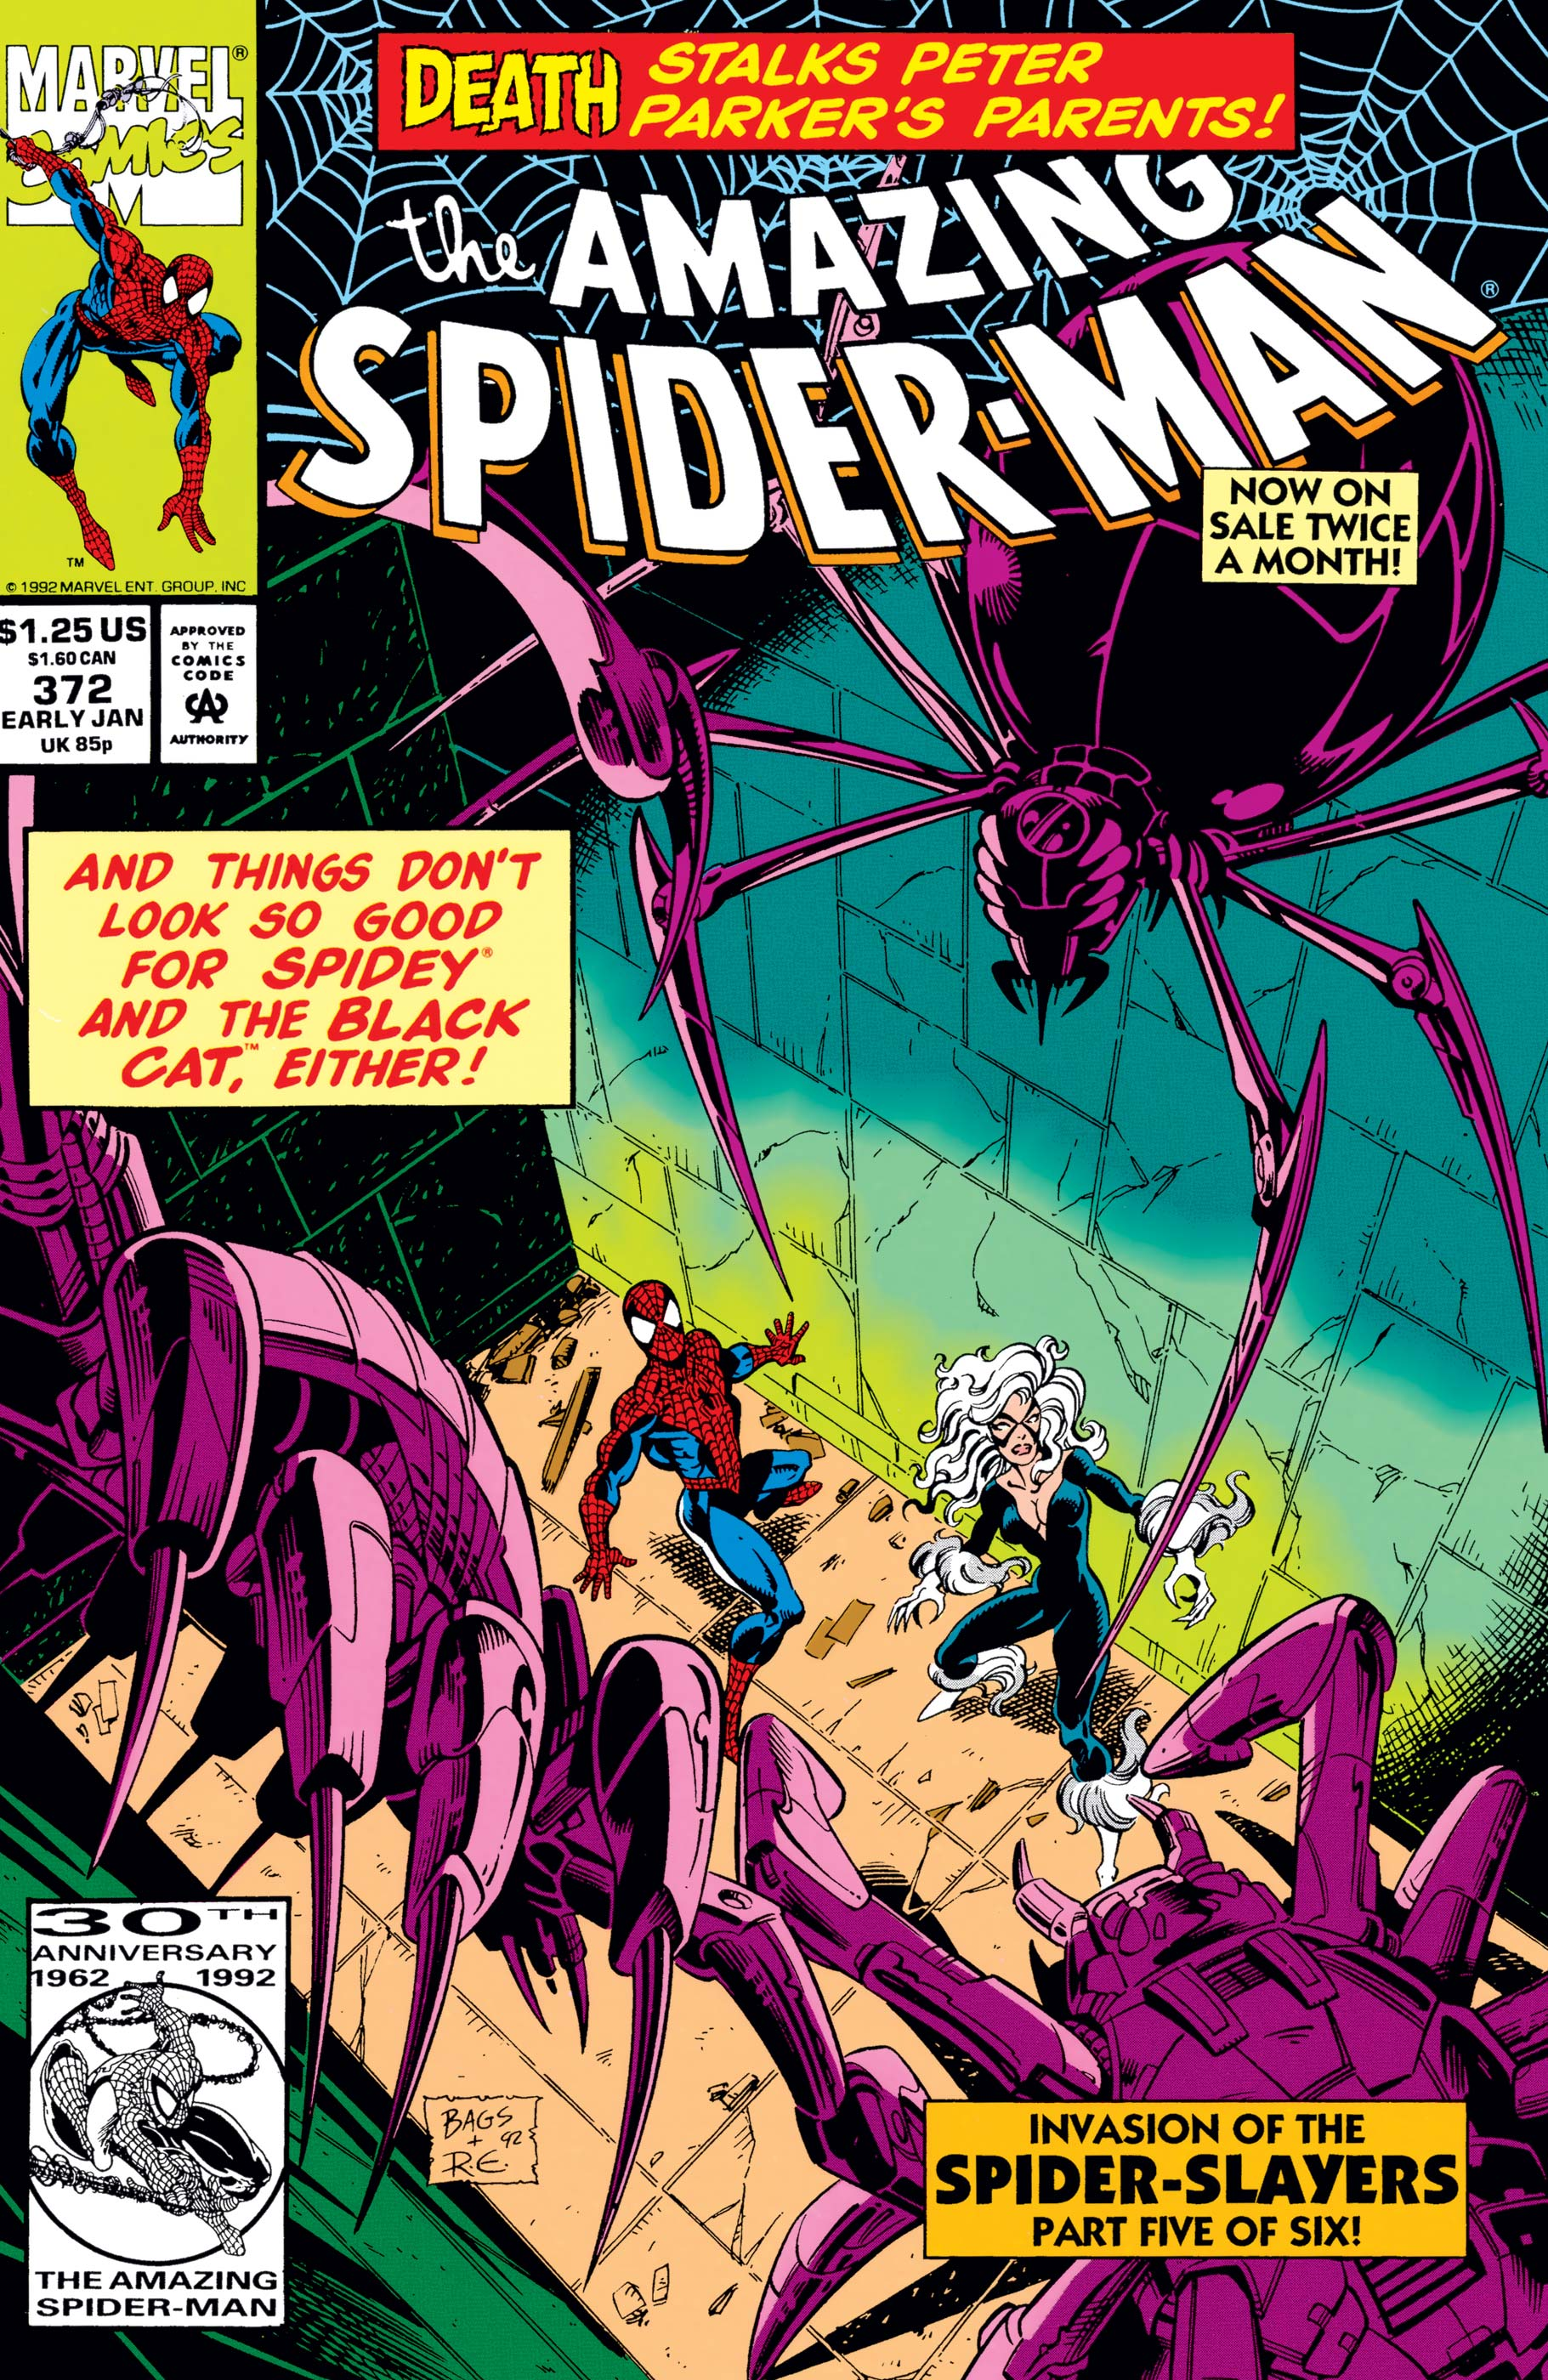 The Amazing Spider-Man (1963) #372